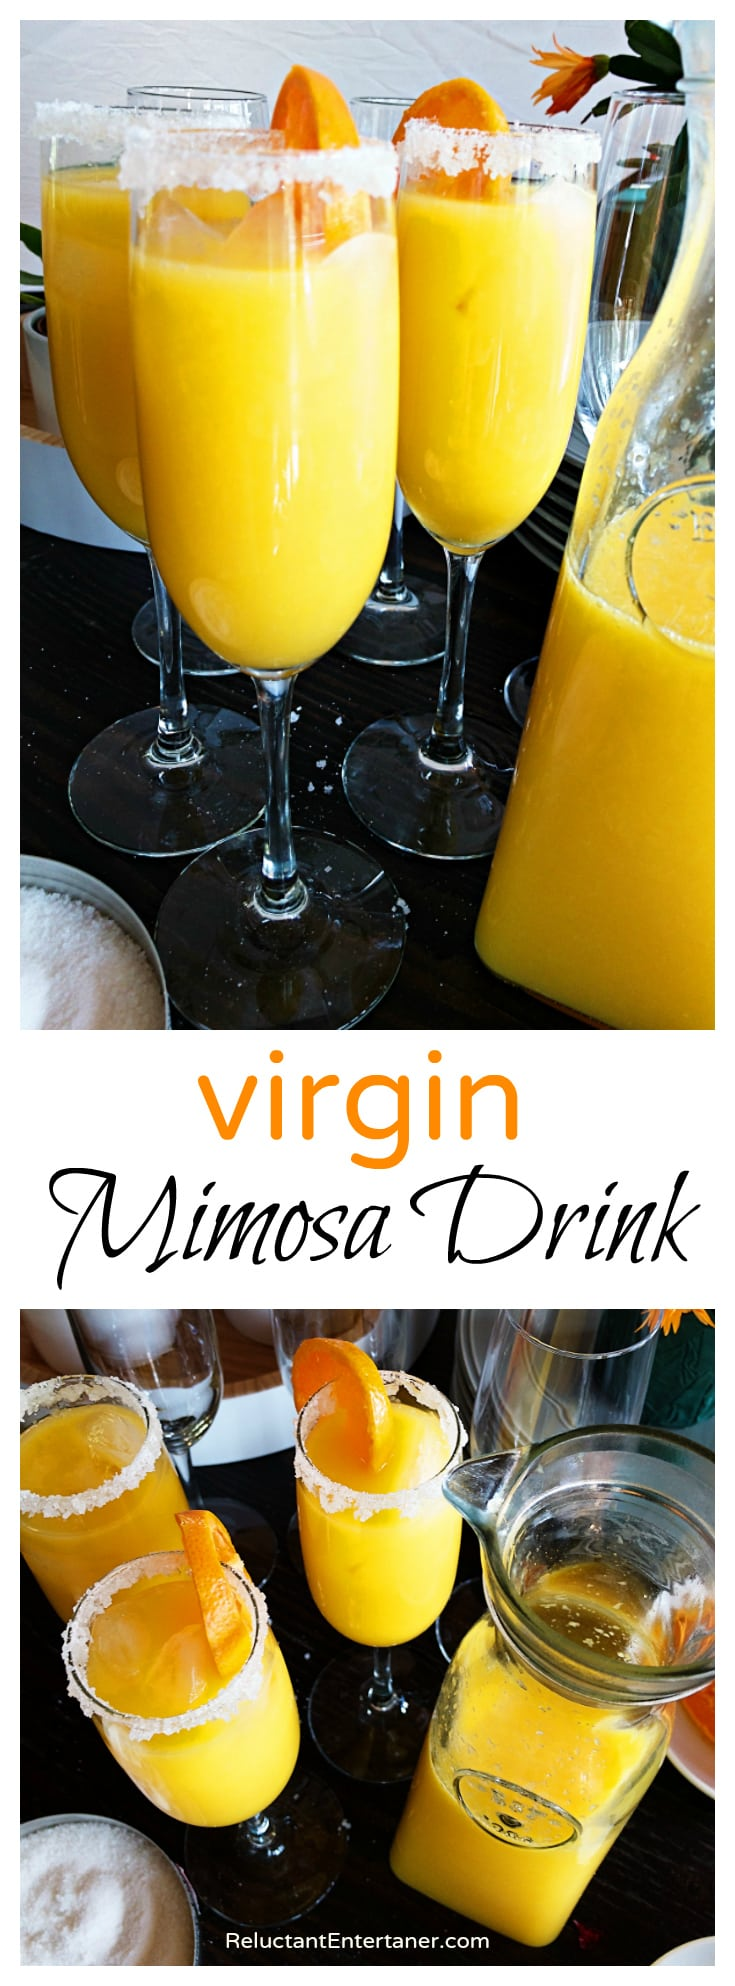 Virgin Mimosa Drink